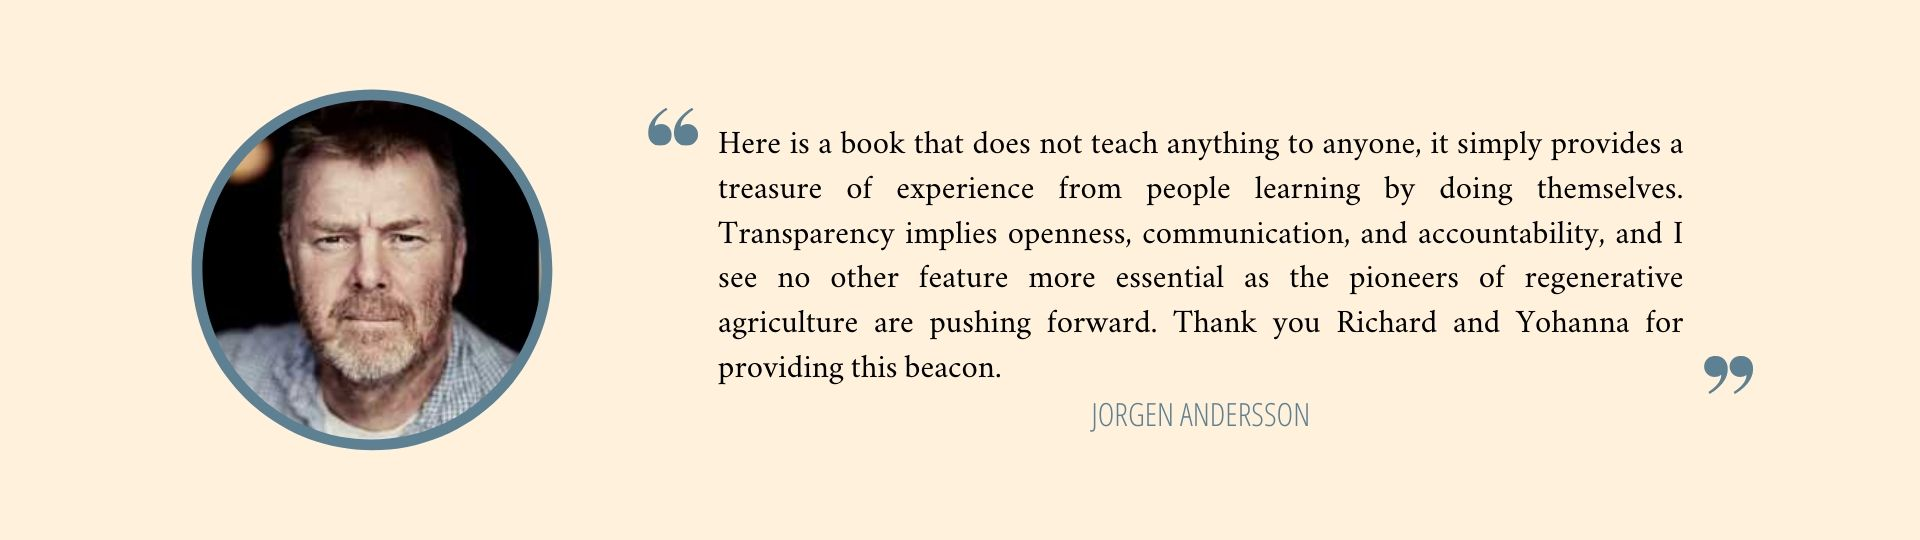 Here is a book that does not teach anything to anyone, it simply provides a treasure of experience from people learning by doing themselves. Transparency implies openness, communication, and accountability, and I see no other feature more essential as the pioneers of regenerative agriculture are pushing forward. Thank you Richard and Yohanna for providing this beacon. - Jörgen Andersson